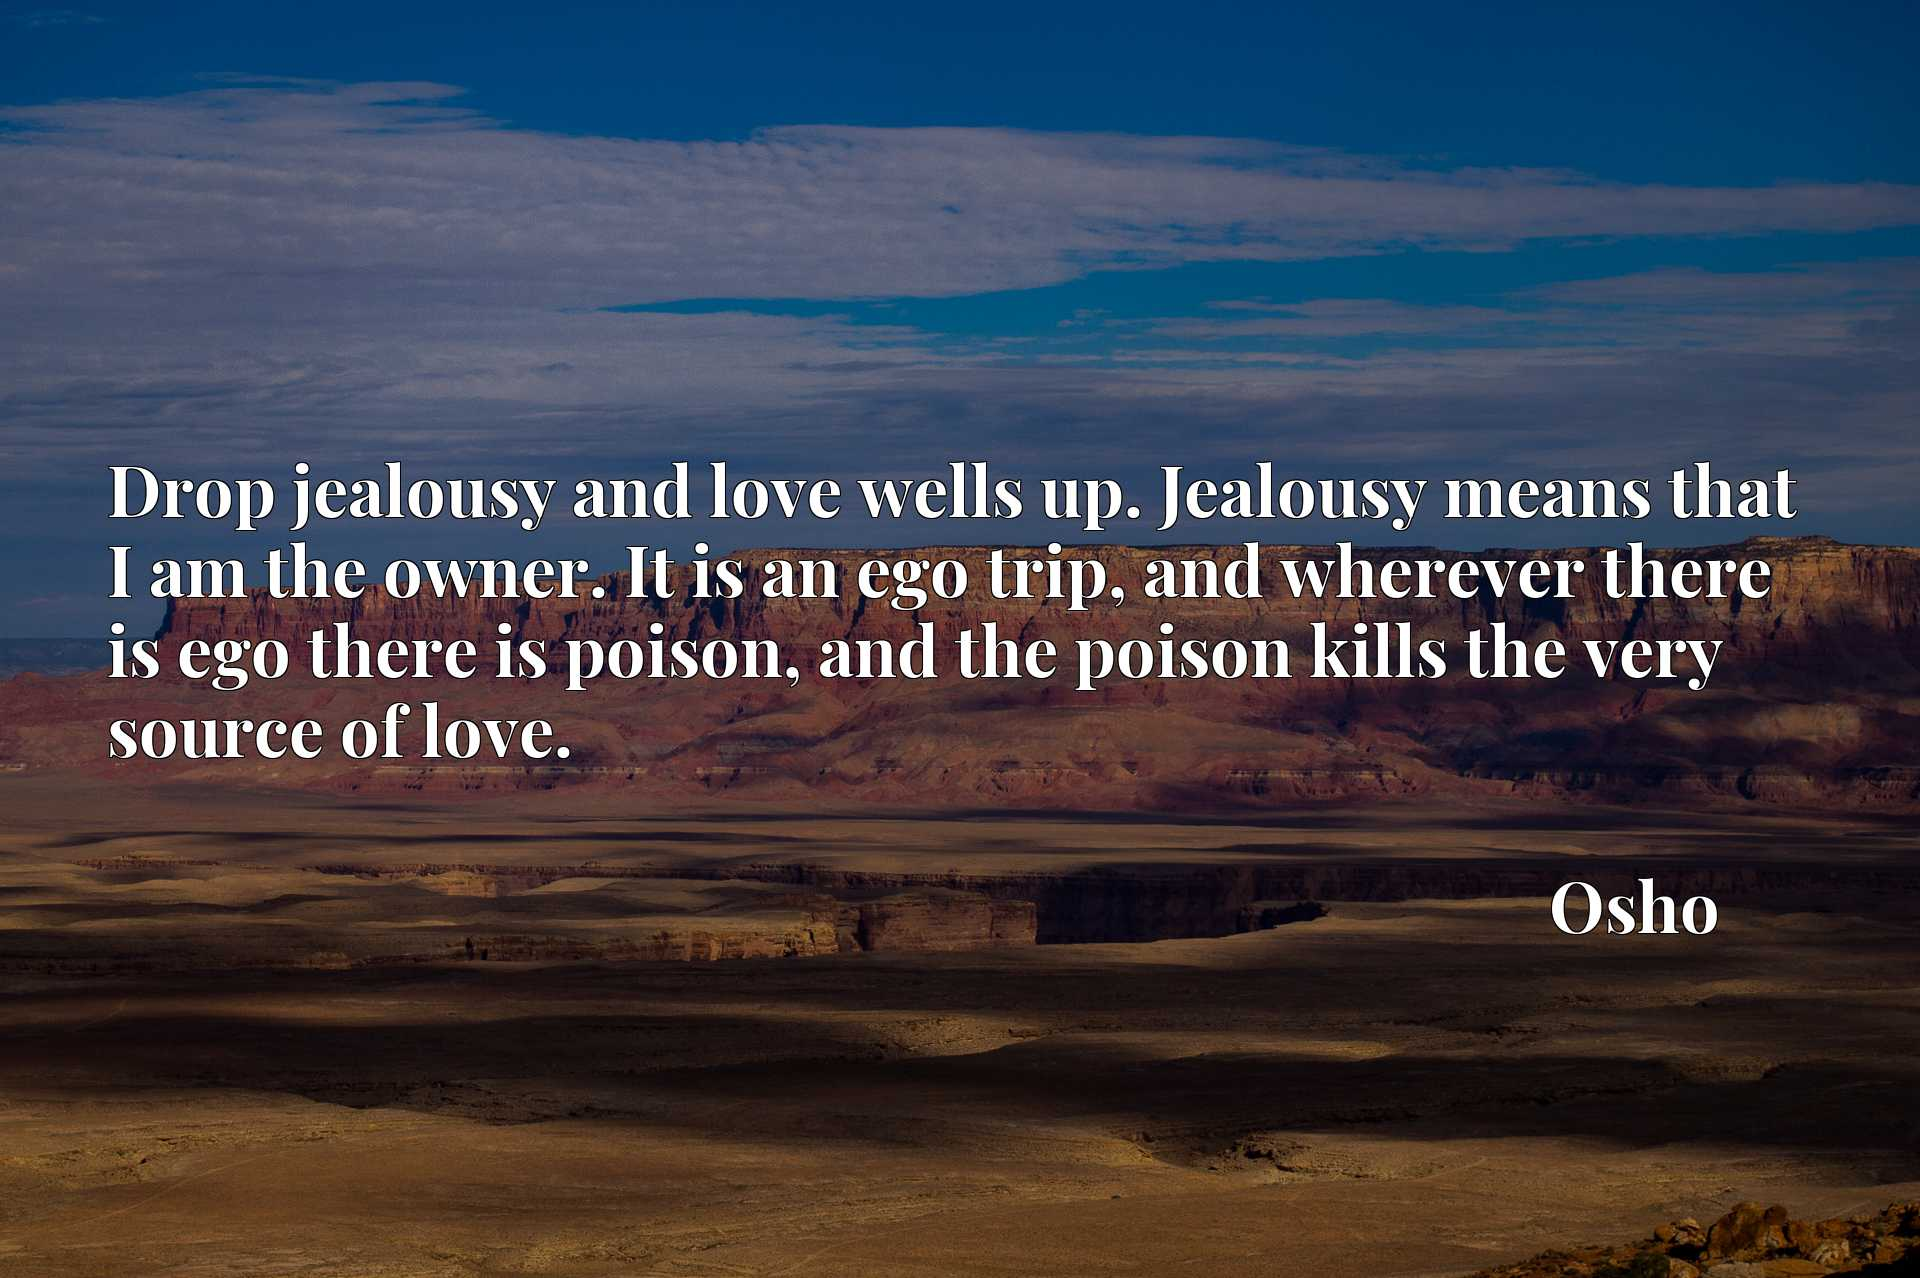 Drop jealousy and love wells up. Jealousy means that I am the owner. It is an ego trip, and wherever there is ego there is poison, and the poison kills the very source of love.